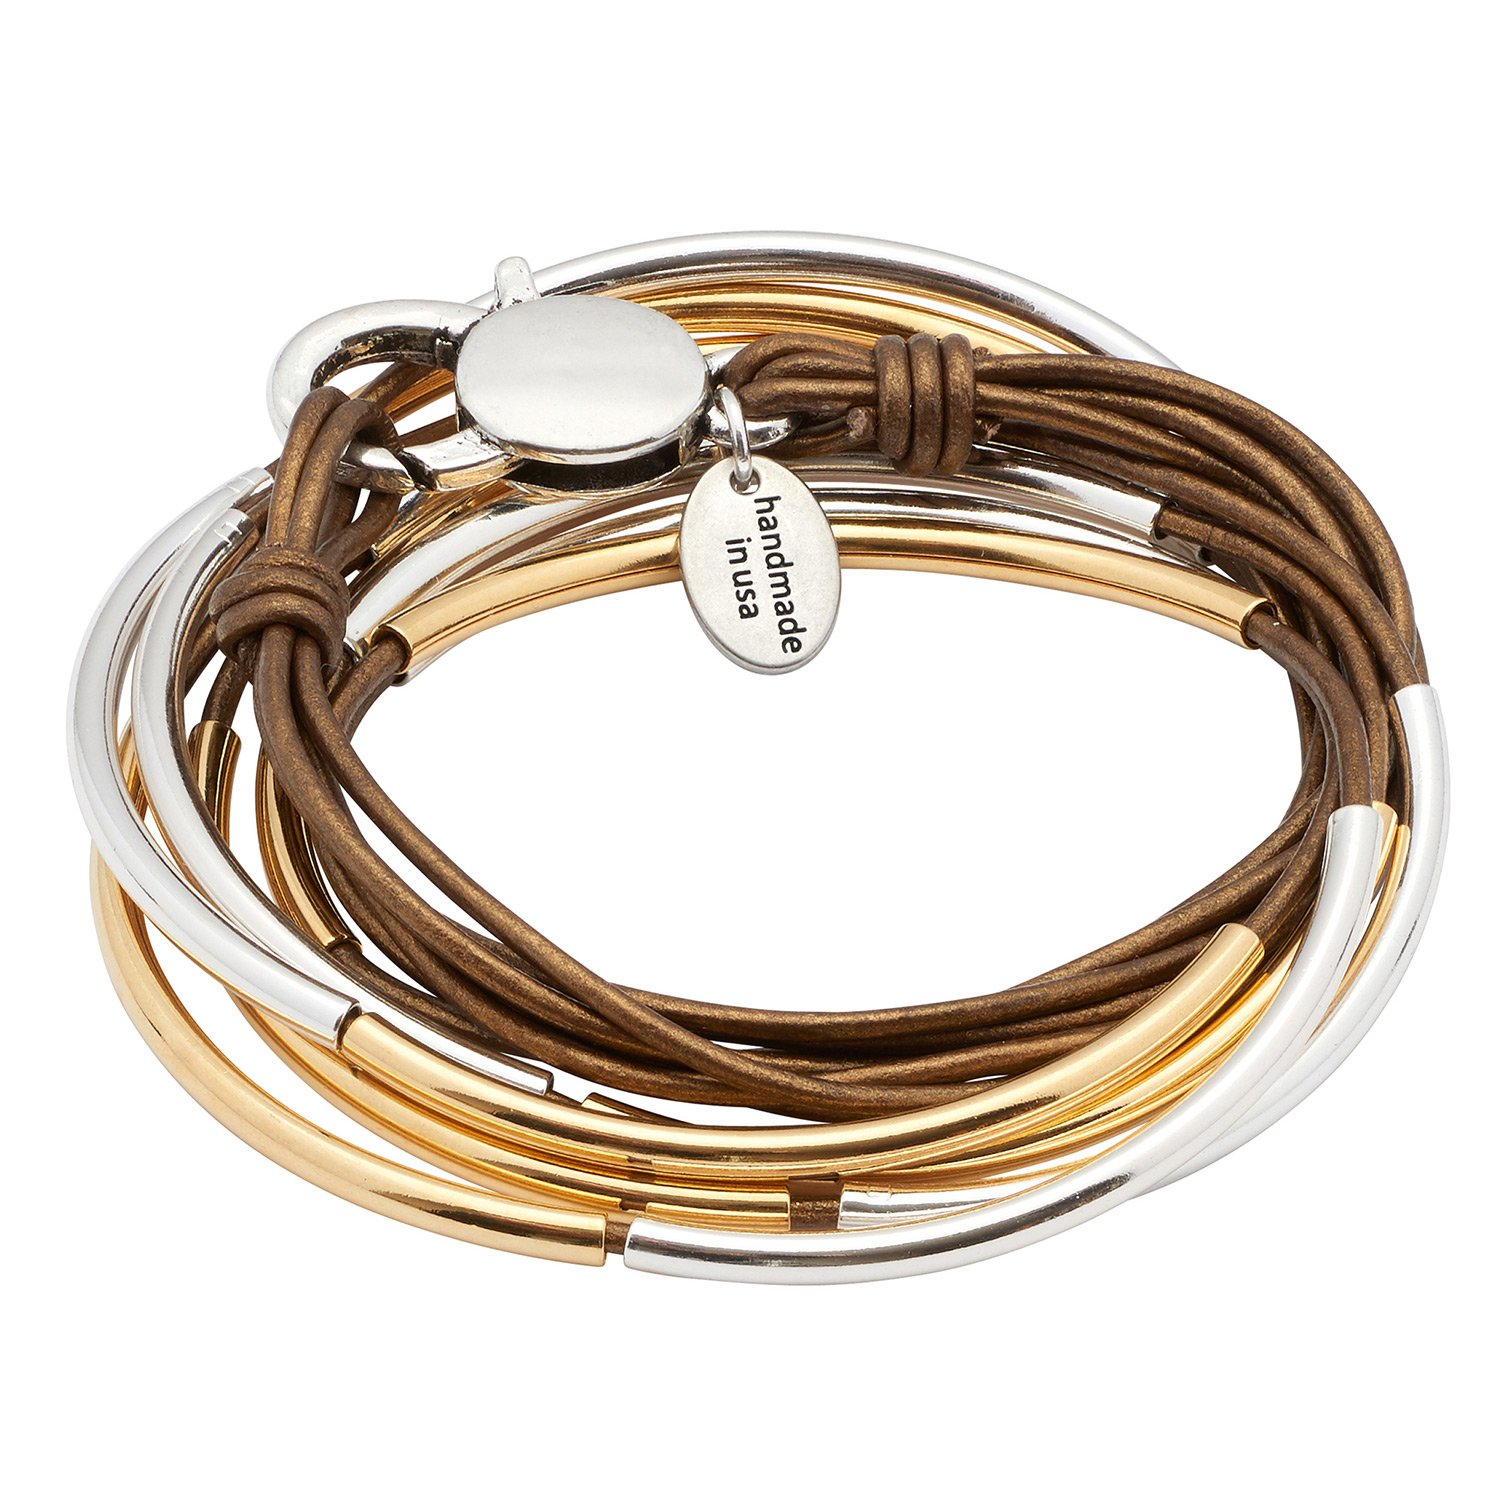 Lizzy Classic Gold & Silver 4 Strand Metallic Bronze Leather Wrap Bracelet (Small) by Lizzy James